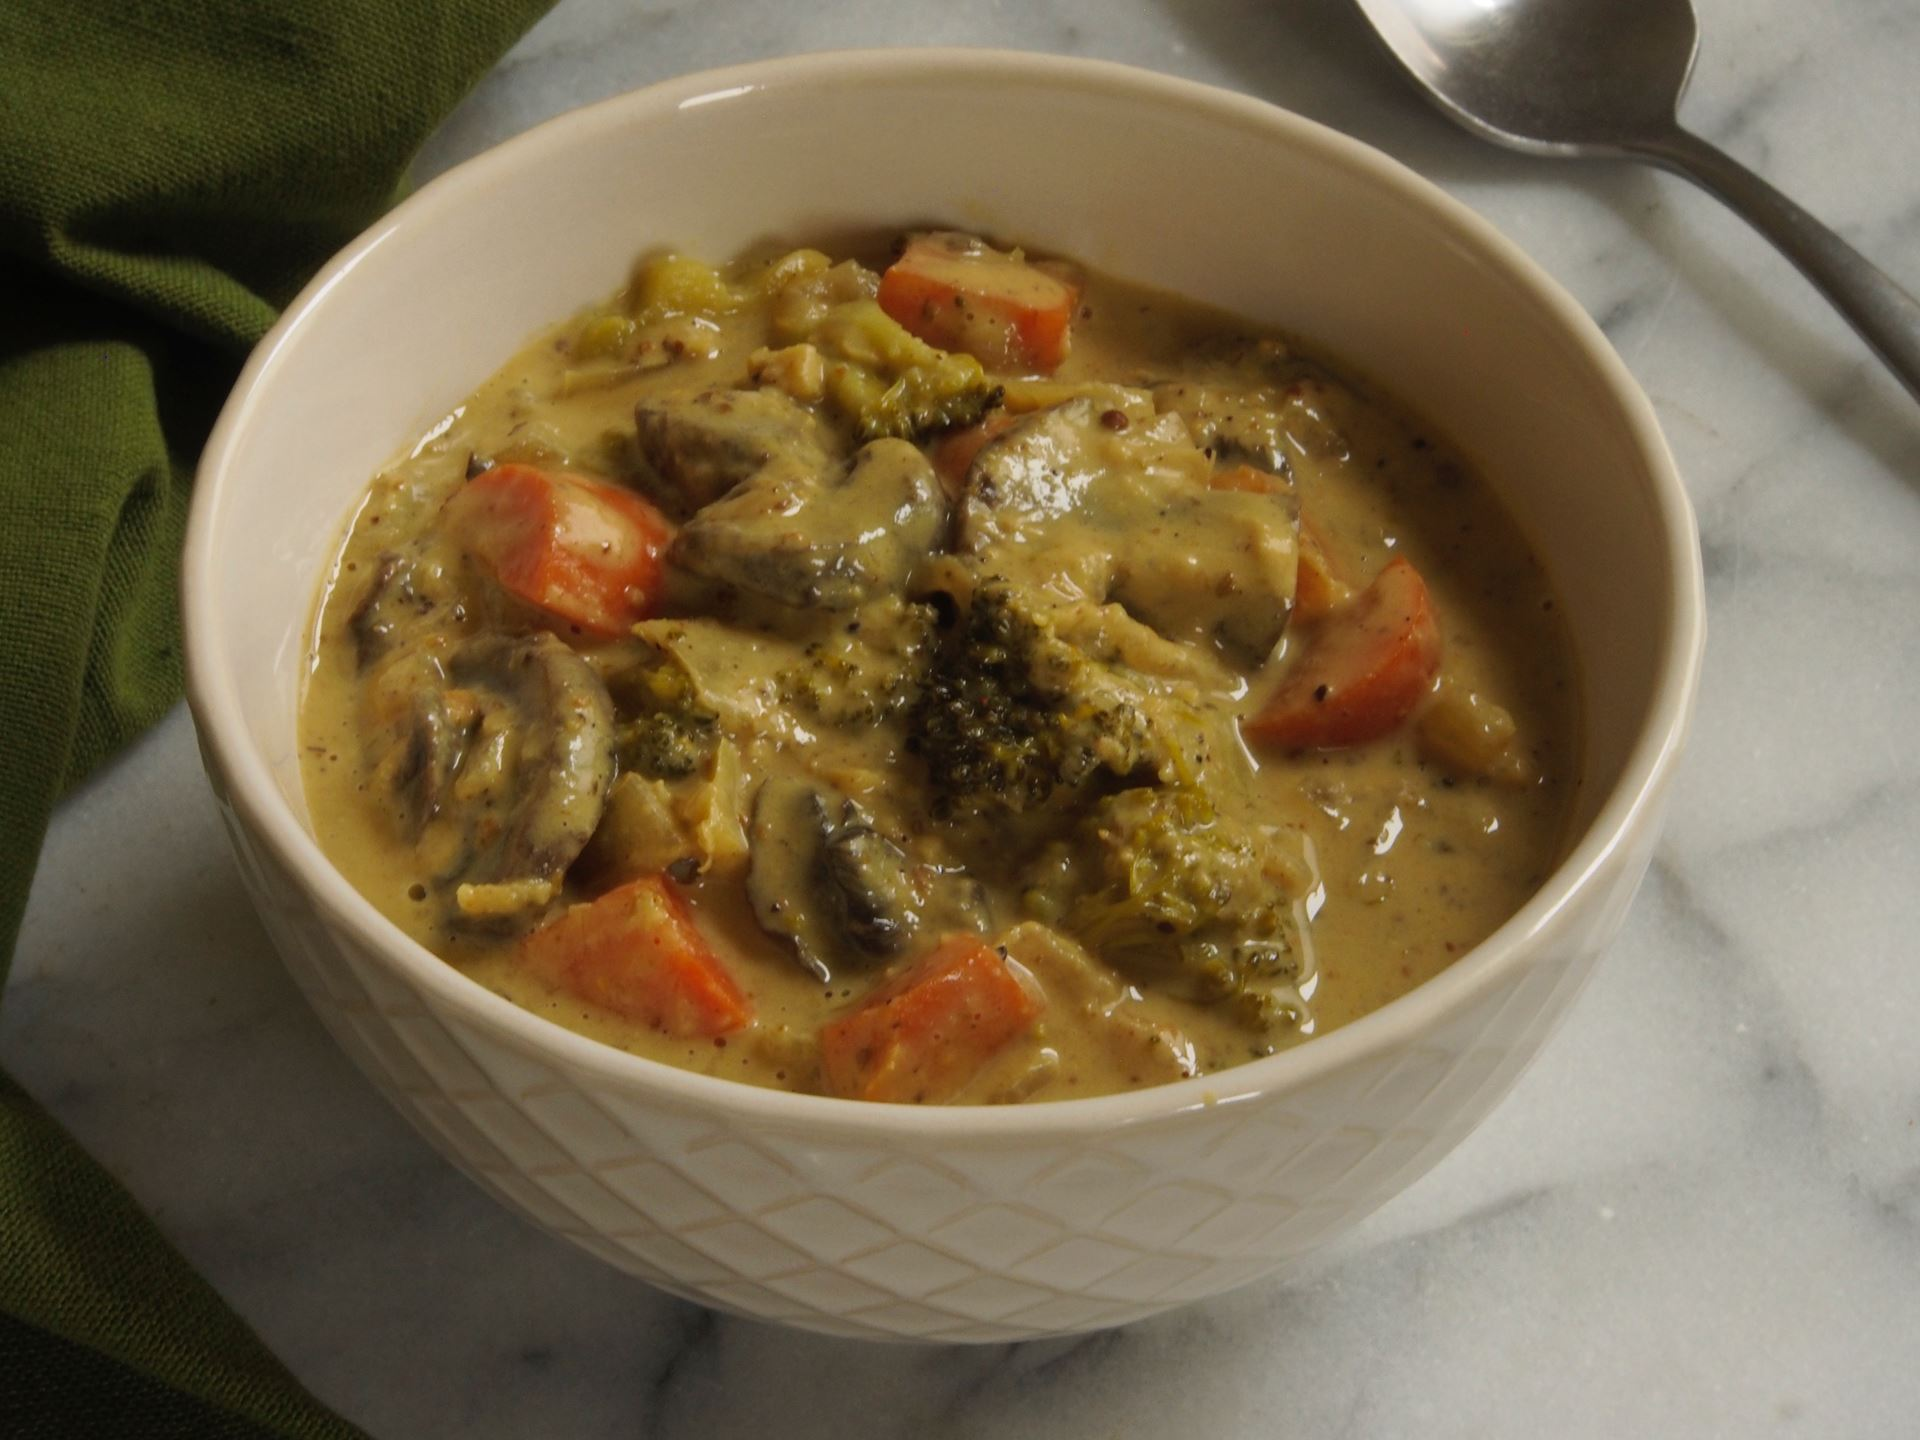 Picture of Peanut Curry with Vegetables 22 oz